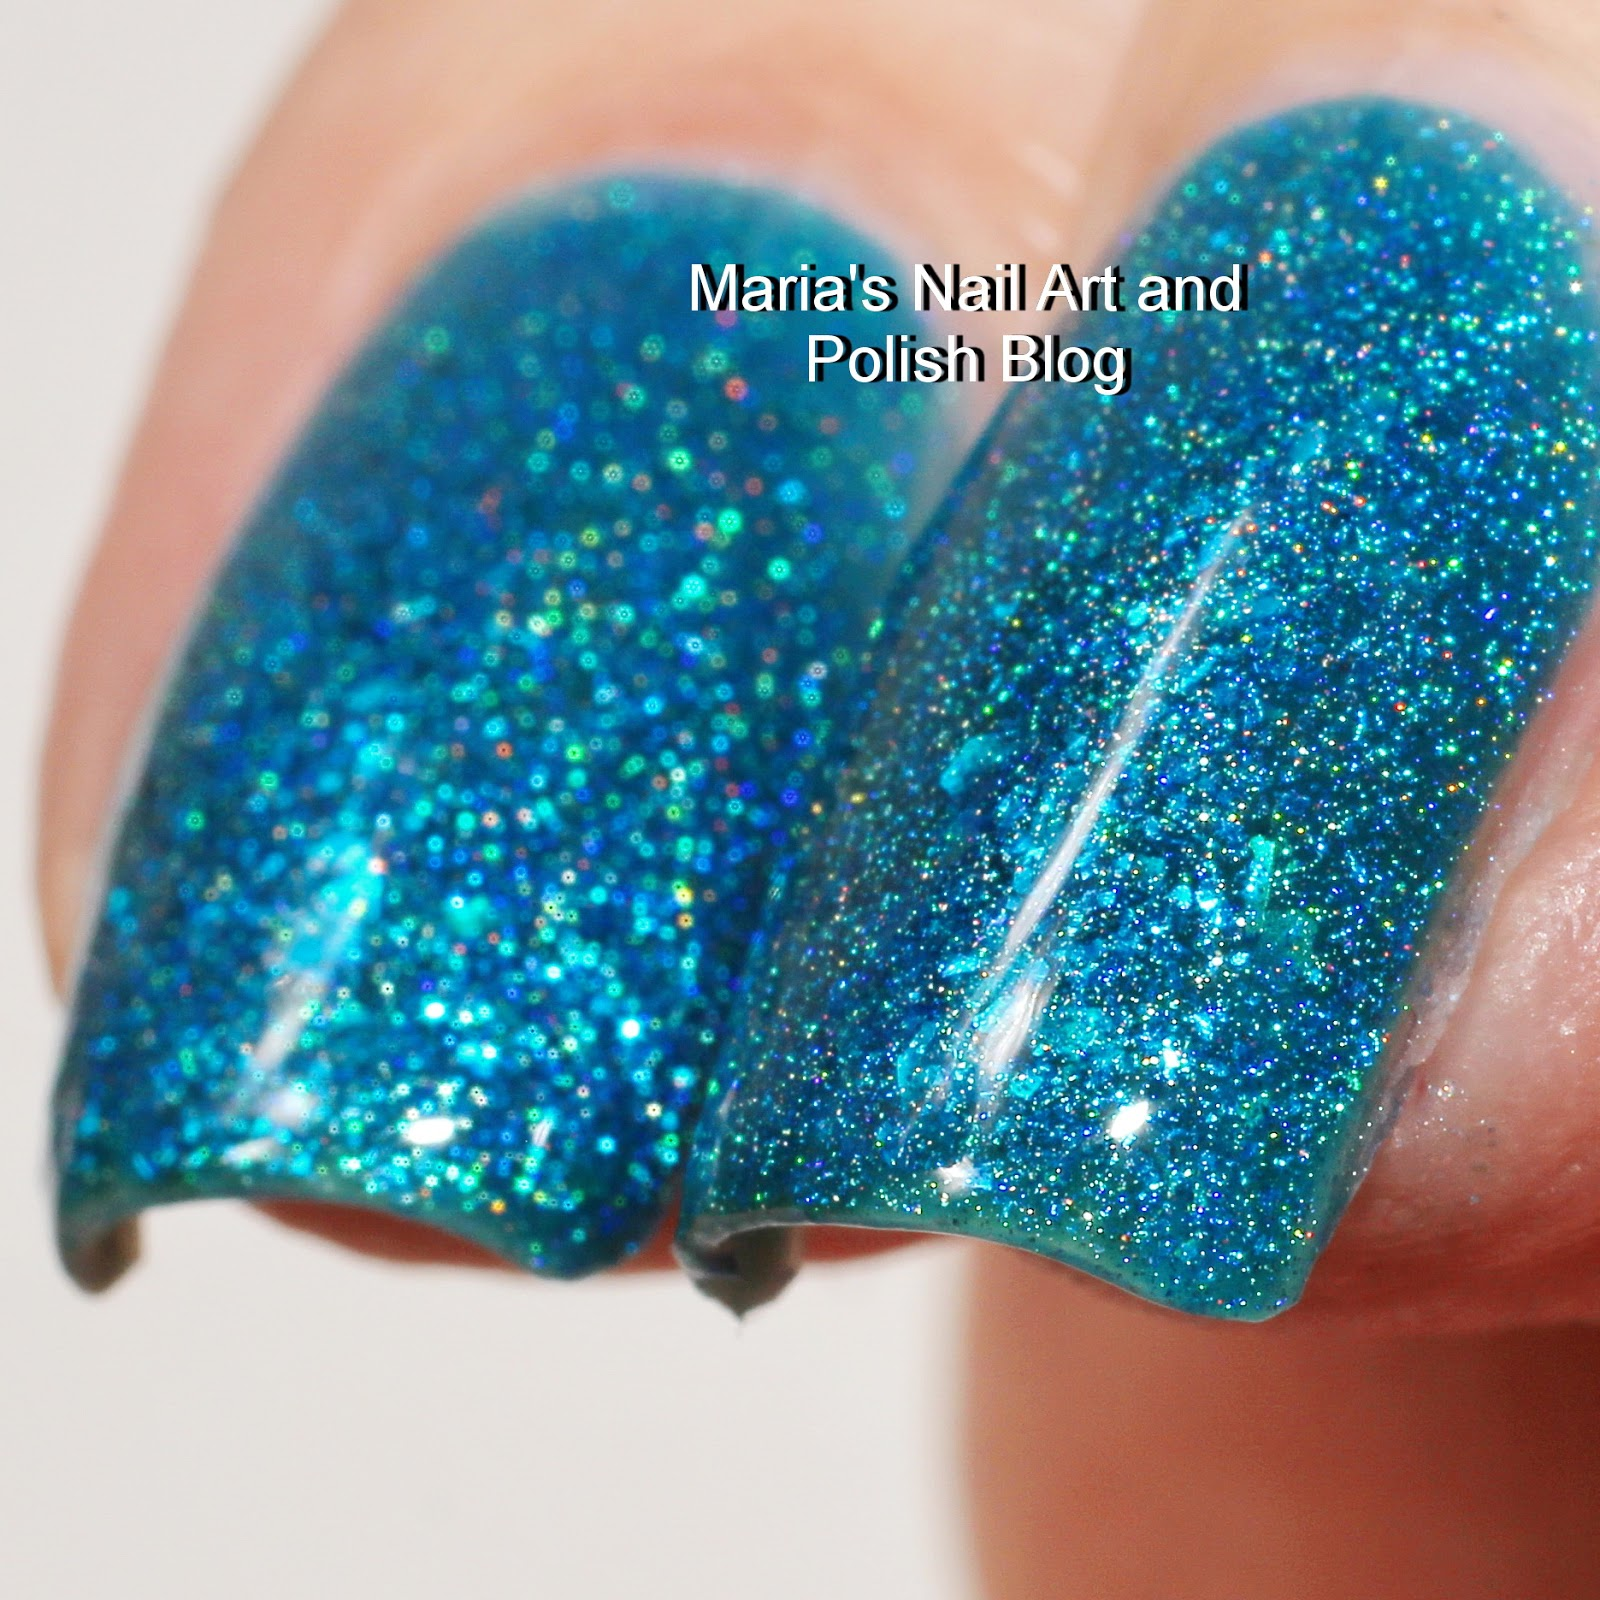 Marias Nail Art And Polish Blog Flushed With Stripes And: Marias Nail Art And Polish Blog: Glam Polish Lehua, Moana